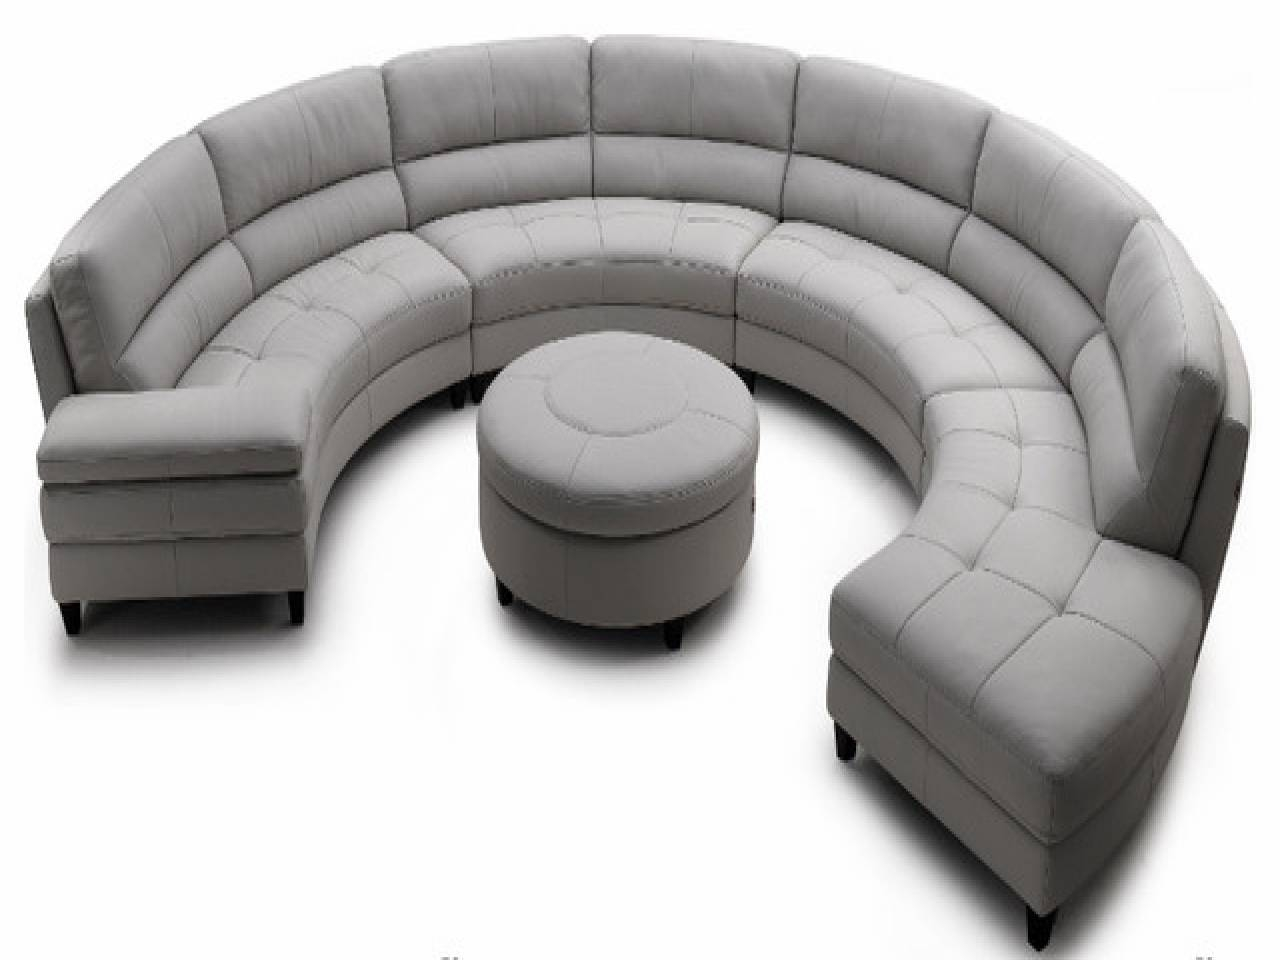 Sofas Center : Contemporary Sofas Half Round Sectional Sofa Circle pertaining to Circular Sectional Sofa (Image 28 of 30)